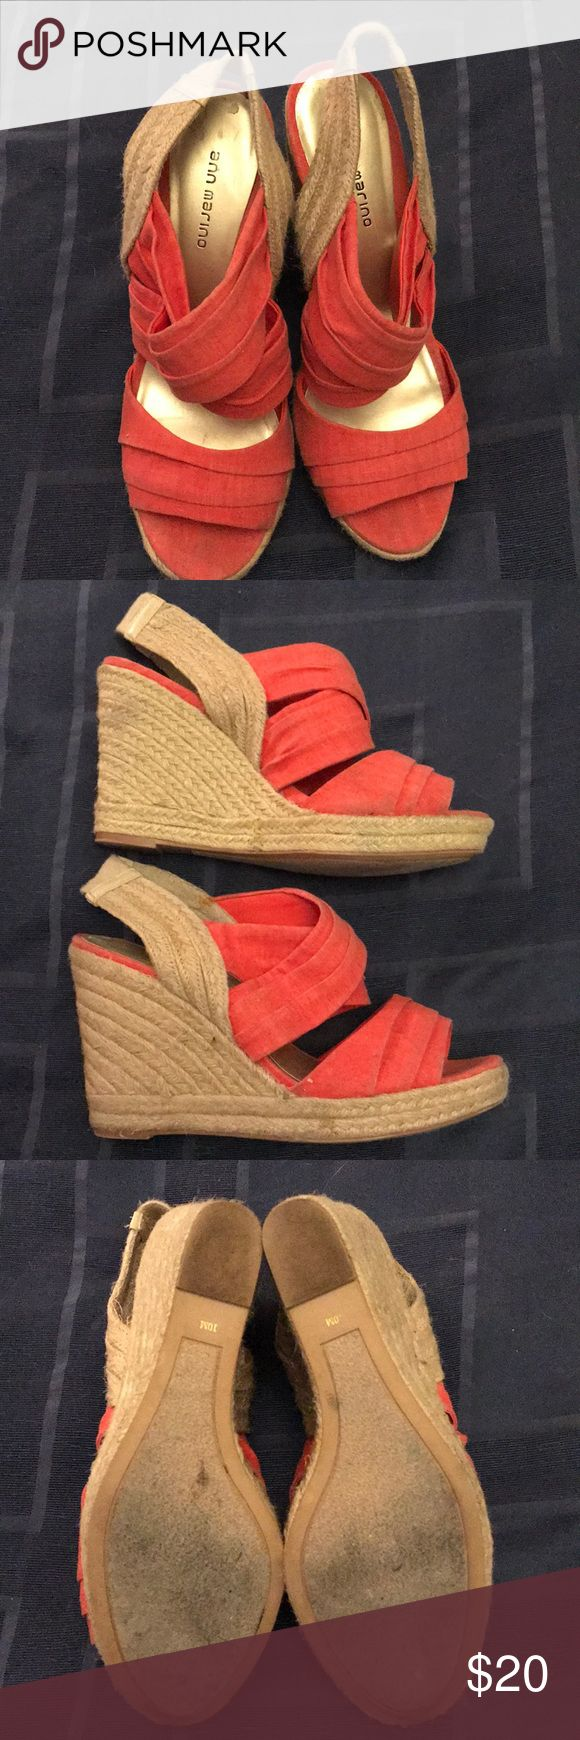 Shoes Cute orange espadrilles Ann Marino Shoes Espadrilles